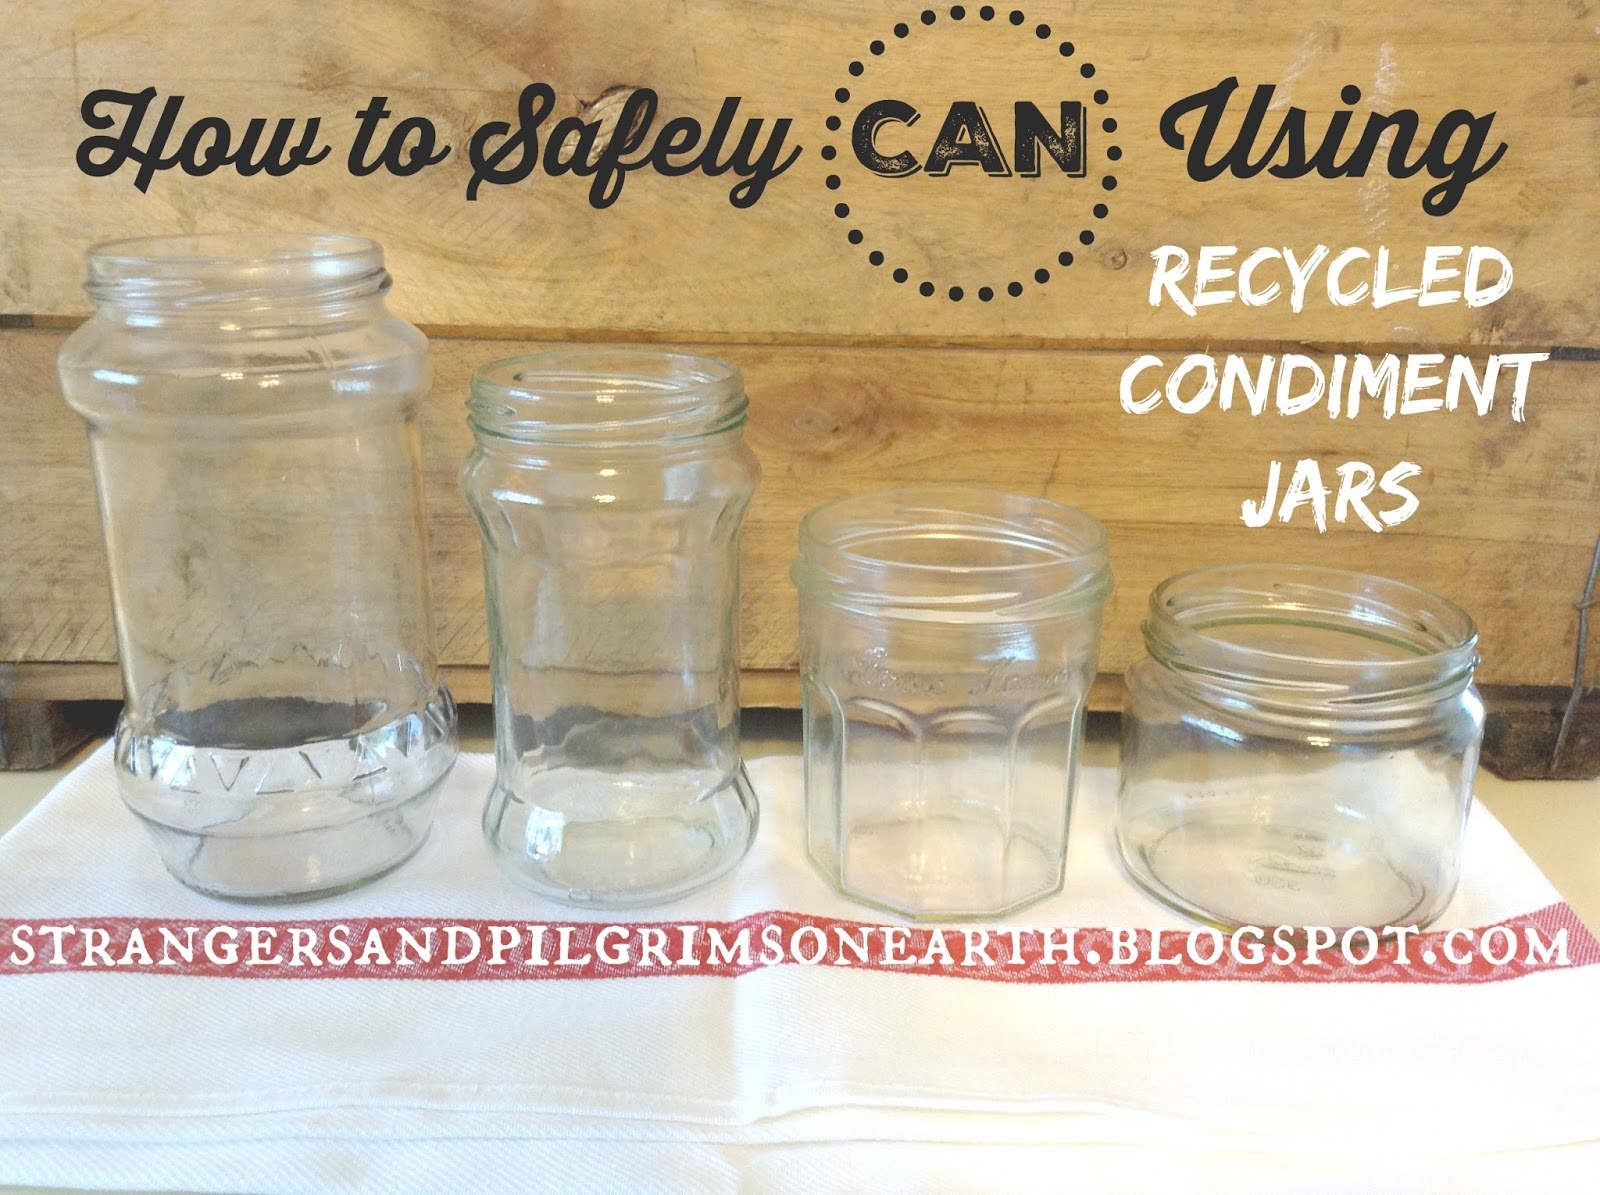 Strangers Pilgrims On Earth How To Safely Can Using Recycled Condiment Jars